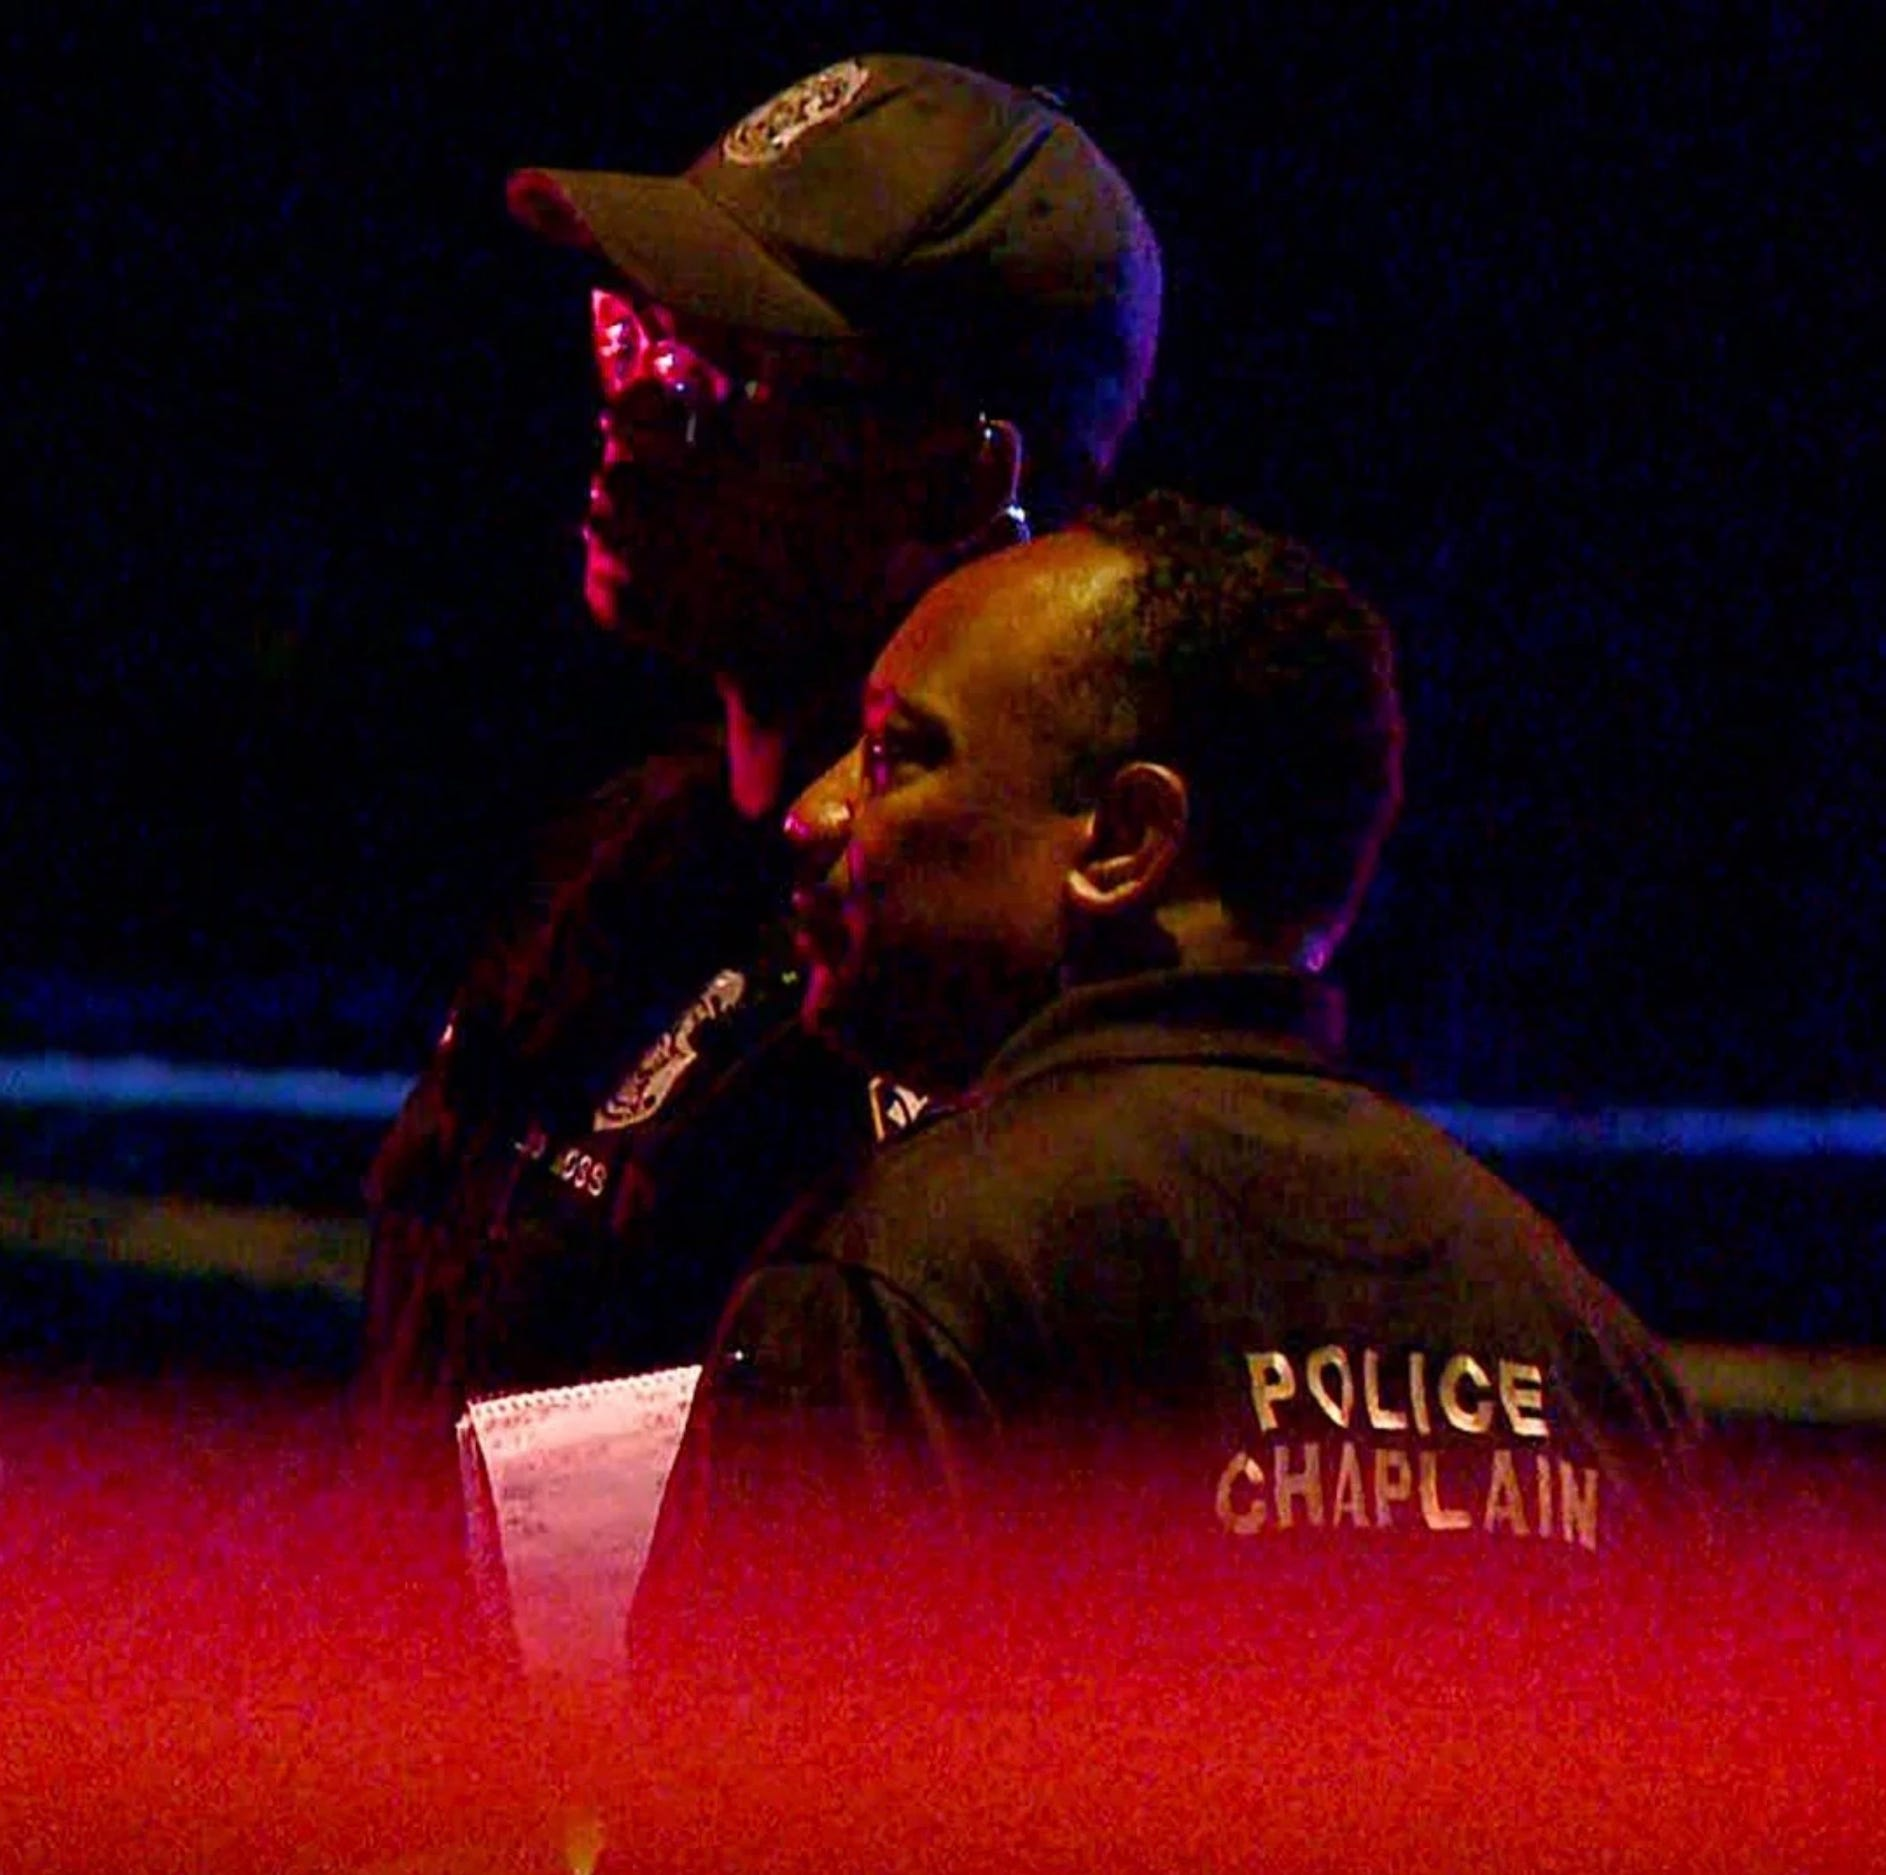 Gunfire kills 3 near Watkins Park jazz festival